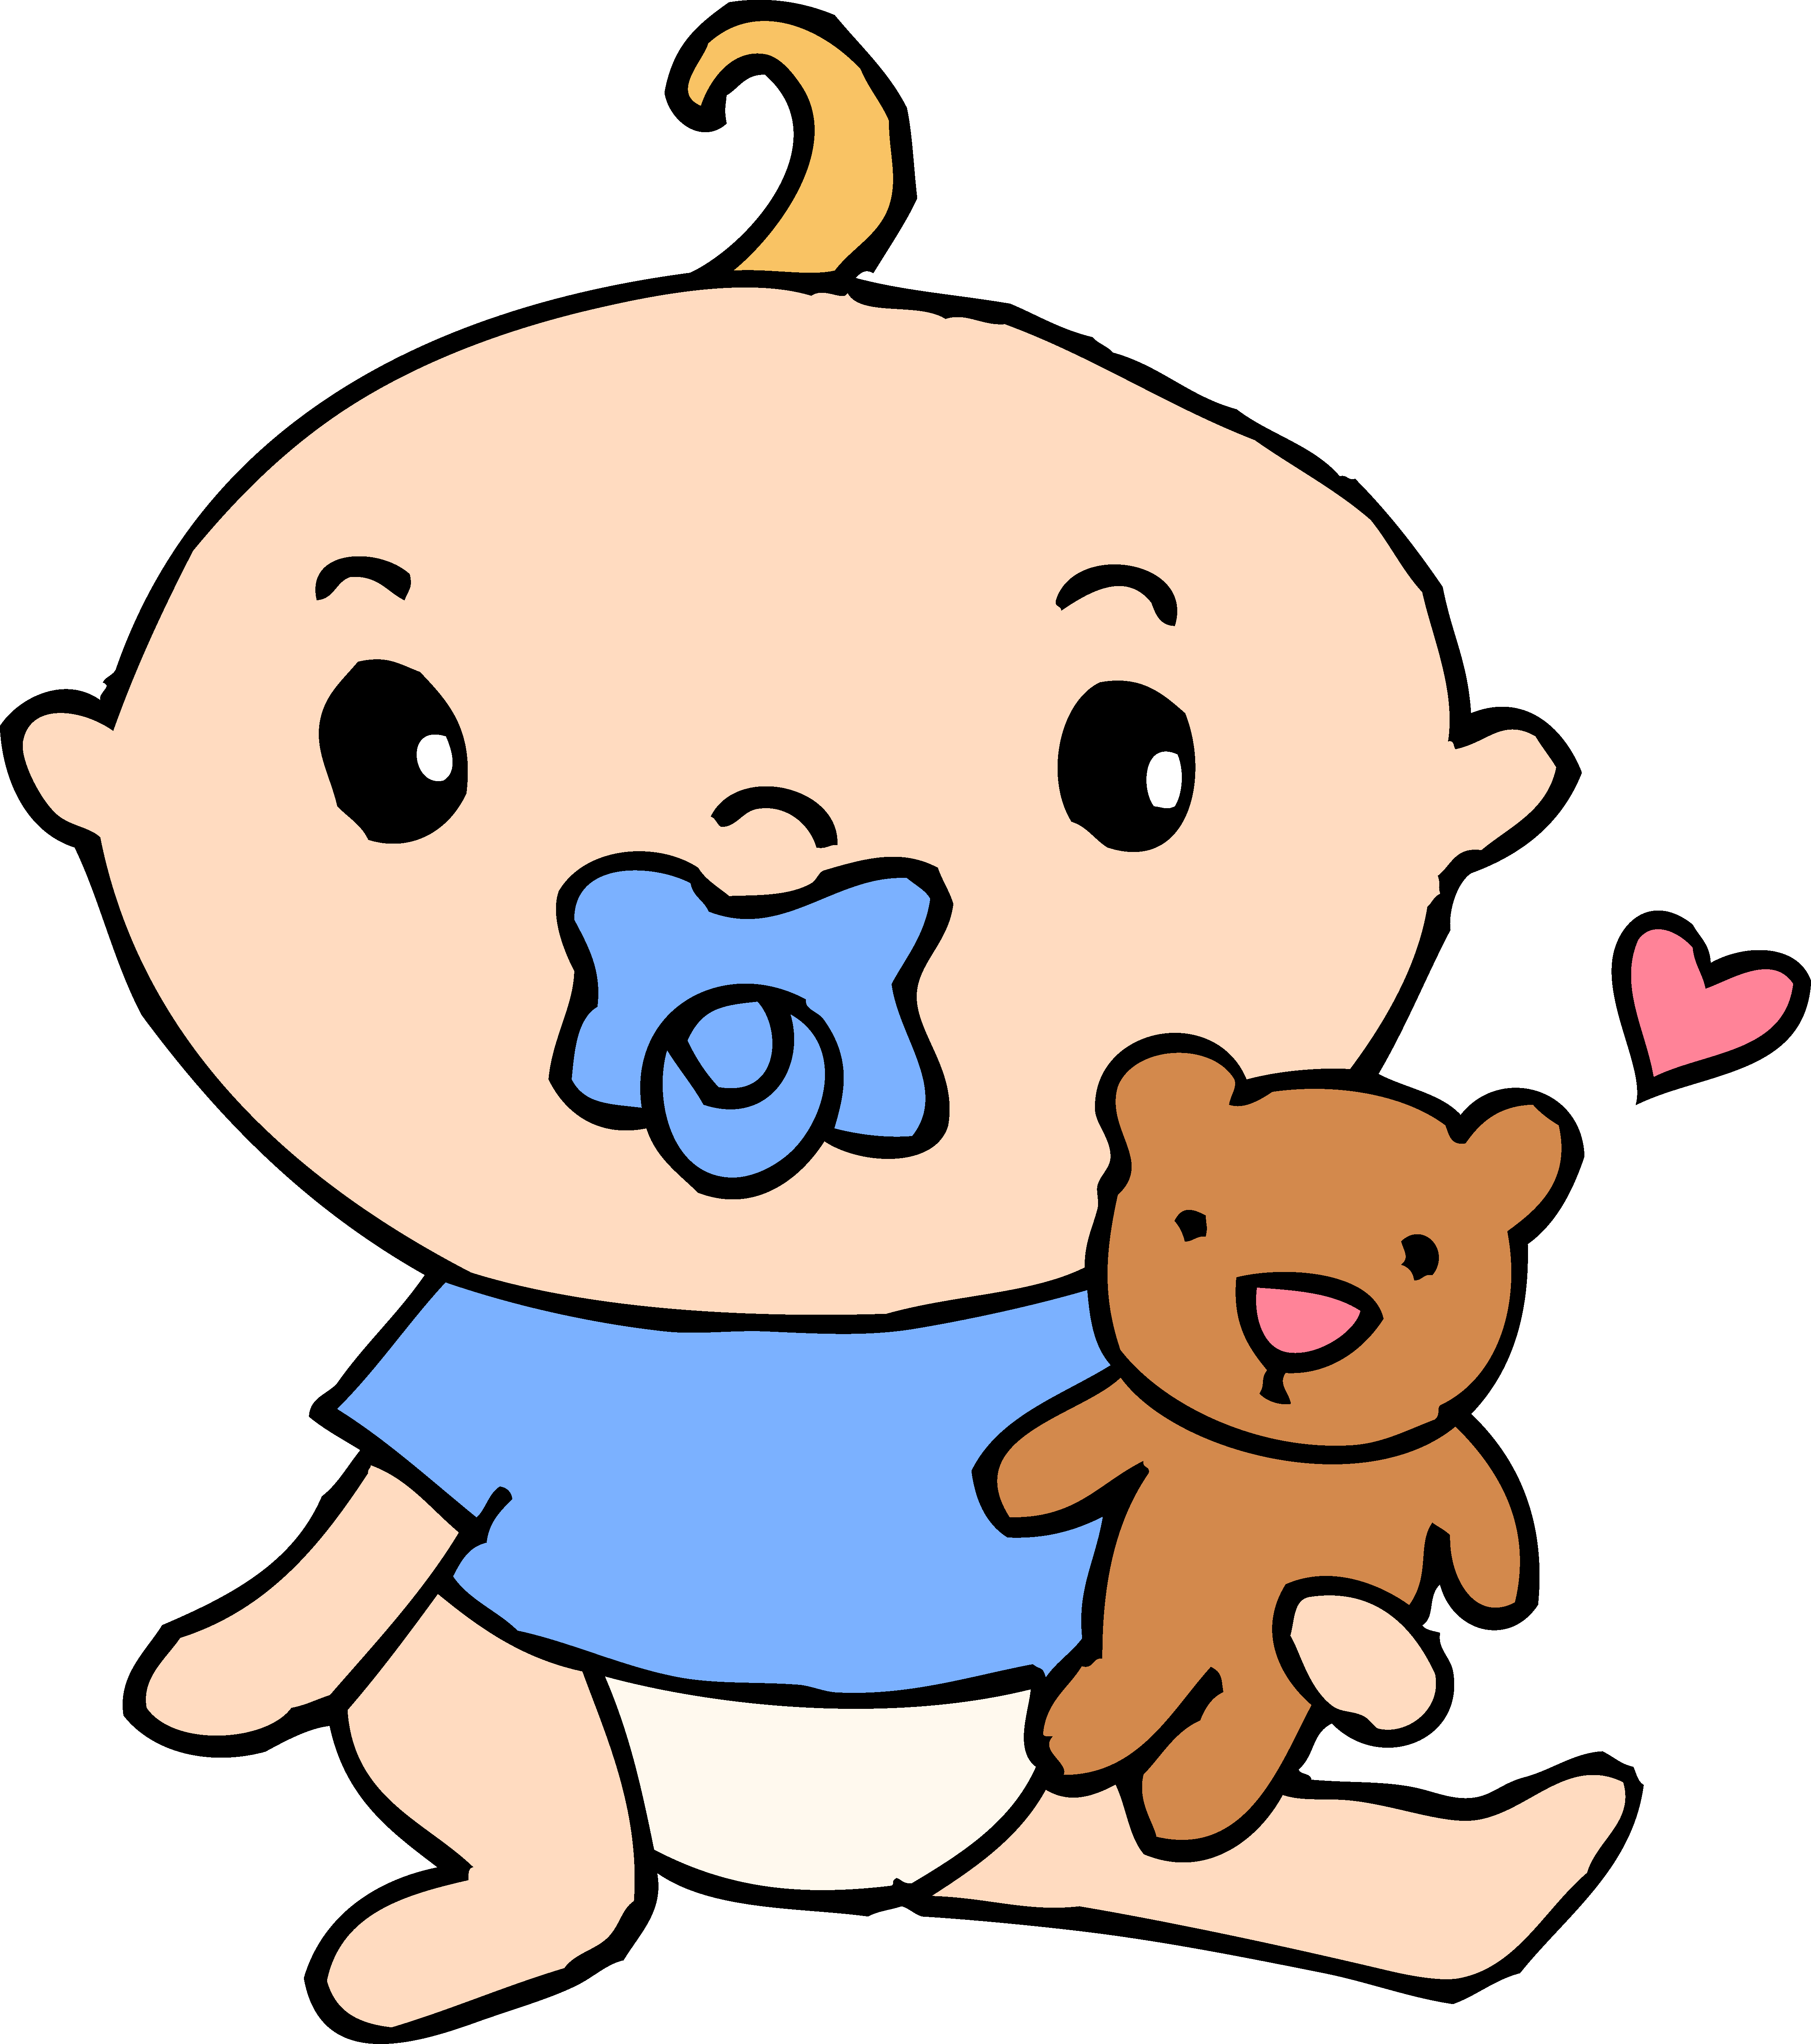 Trends For Baby Boy Dress Clipart-Trends For Baby Boy Dress Clipart-17